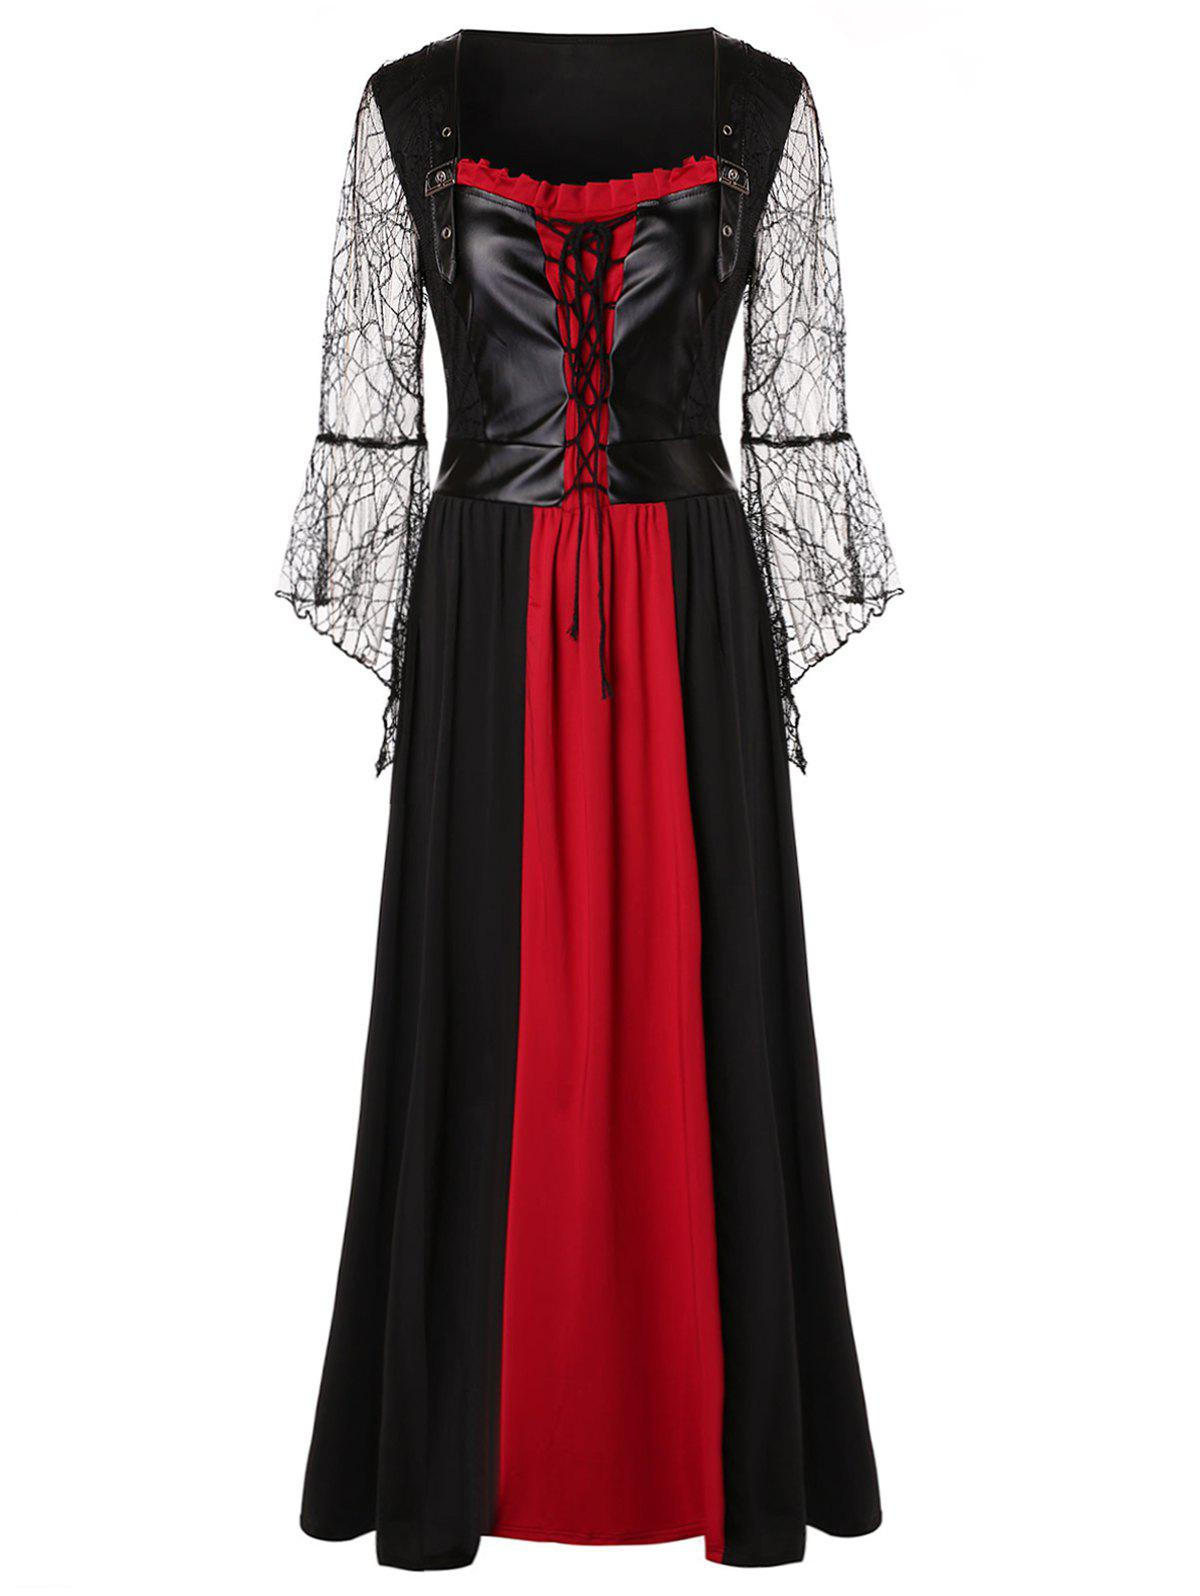 Shop Plus Size Lace Up Maxi Halloween Dress